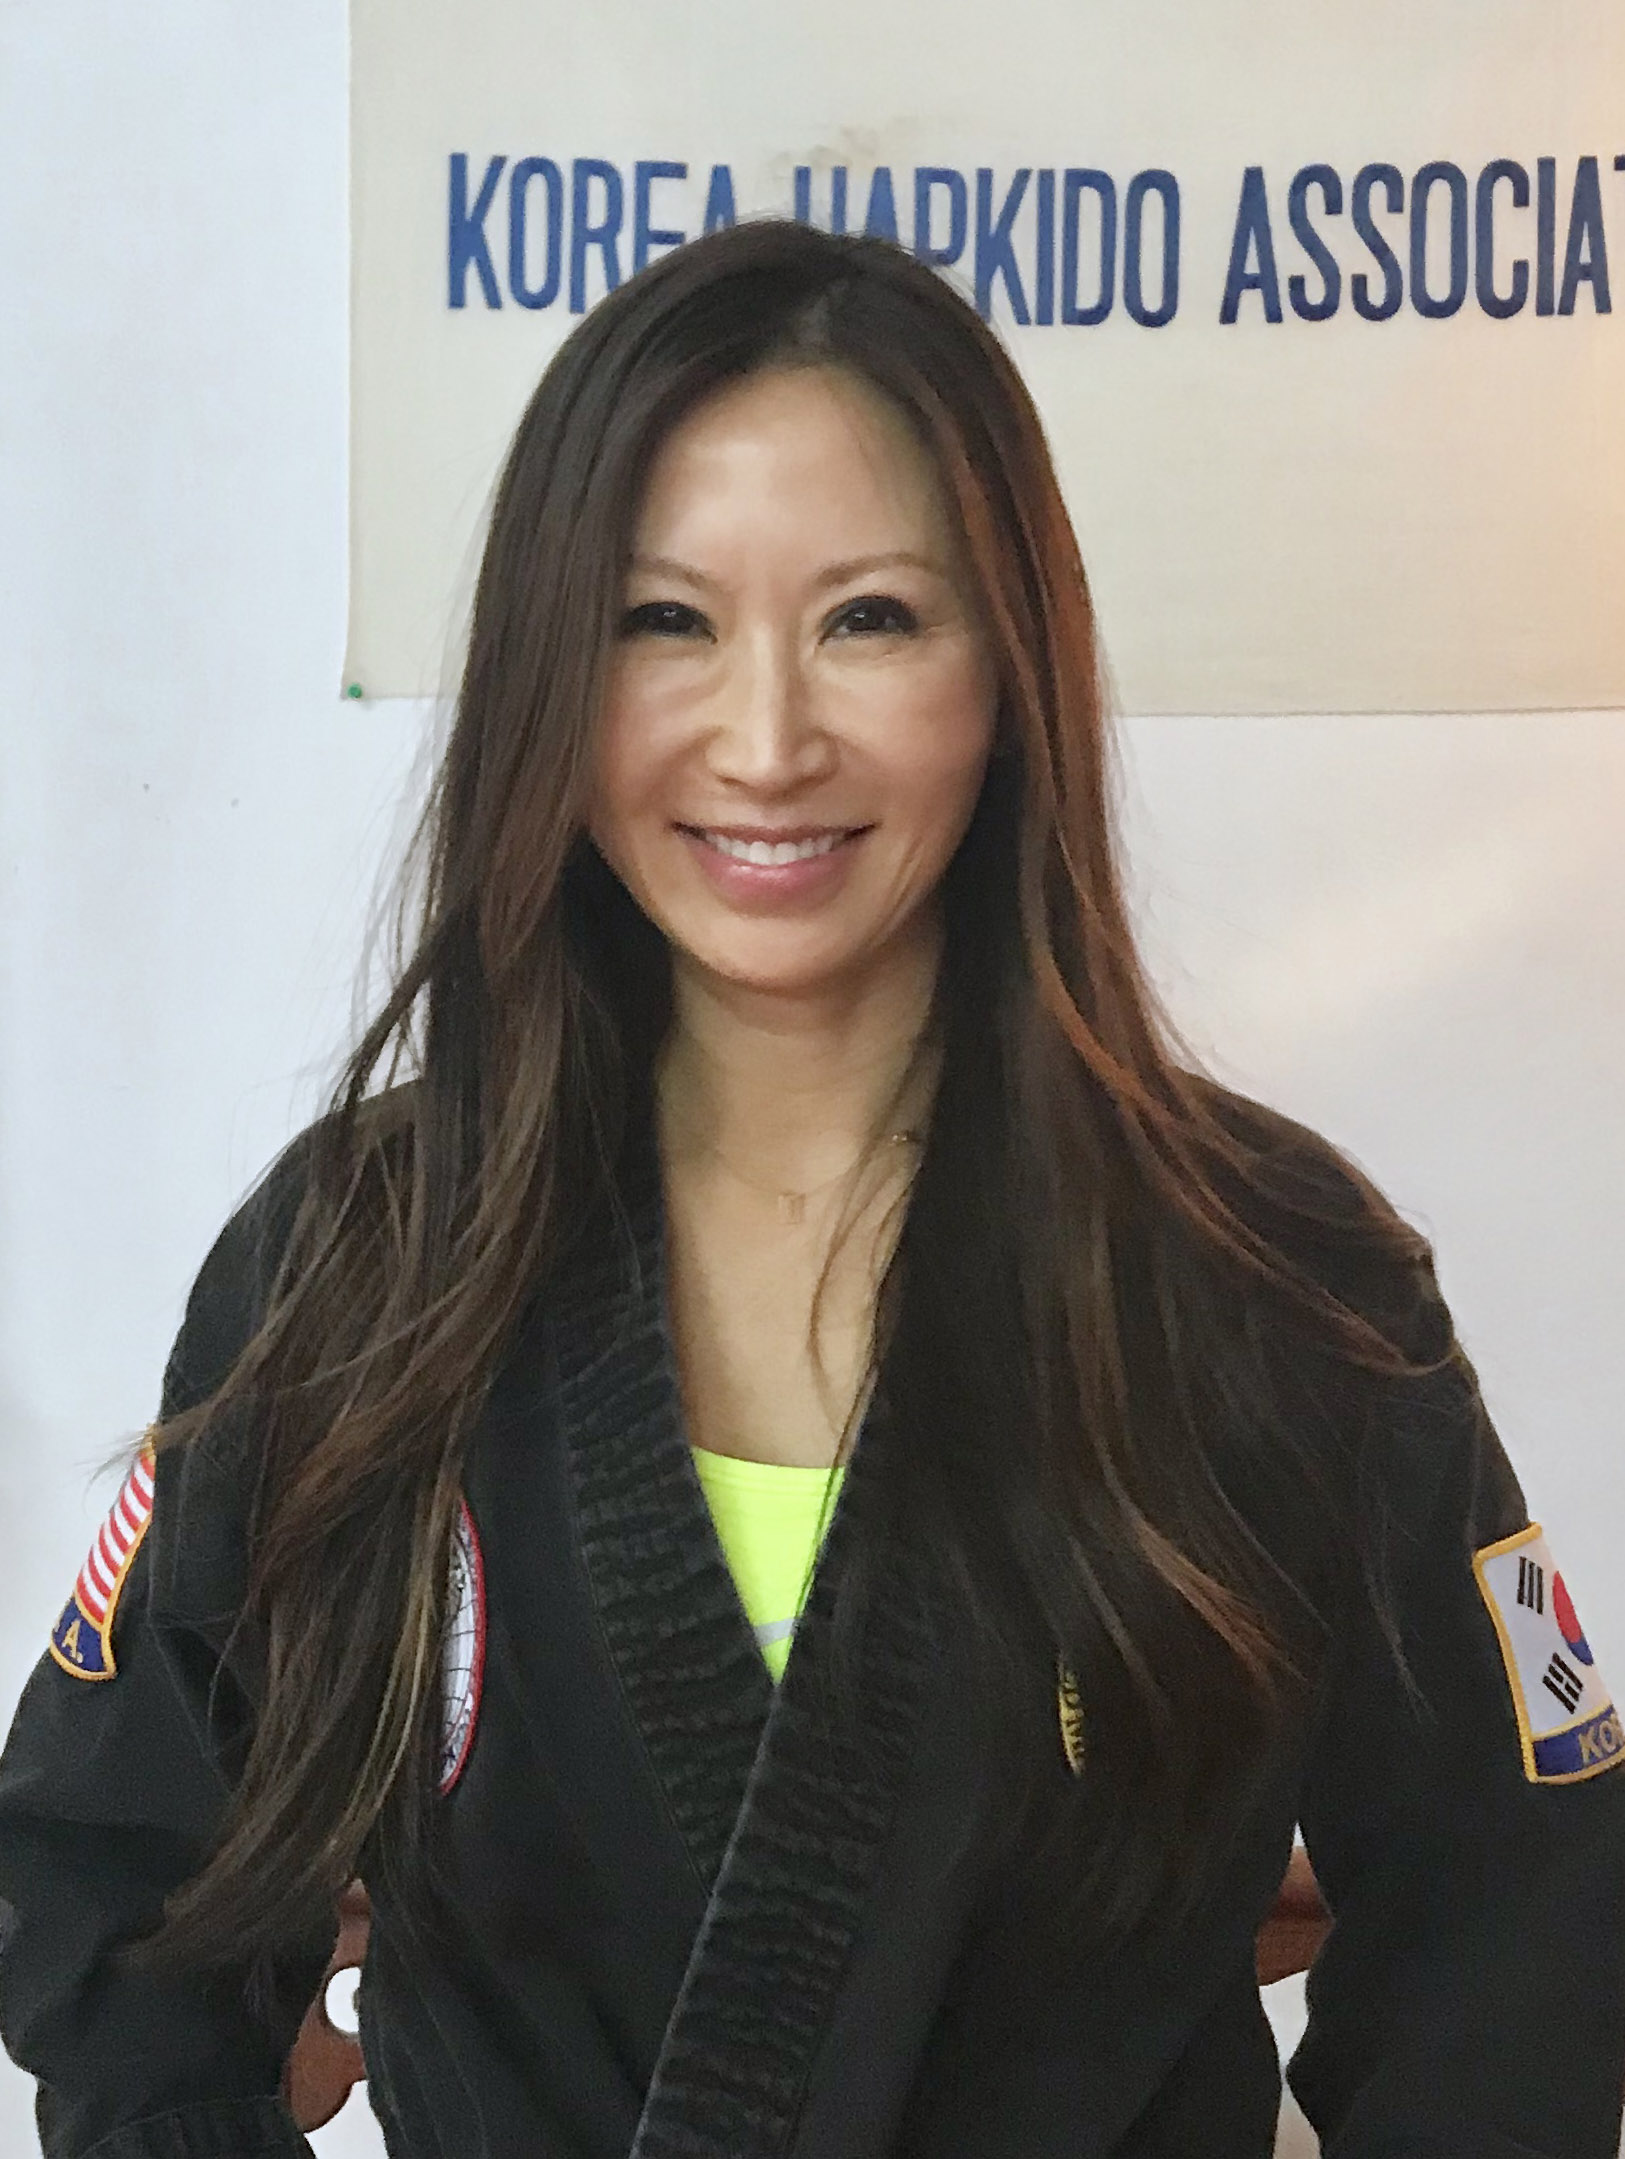 Senior instructor Mindy Nam  has over 25 years experience in marital arts with a black belt in Tae Kwon Do and is working towards her 3rd Dan in HapKiDo.  She is also a student of Chi Gong, Tai Chi, yoga and energy work. She is an attorney and is active on many boards of charitable organizations.